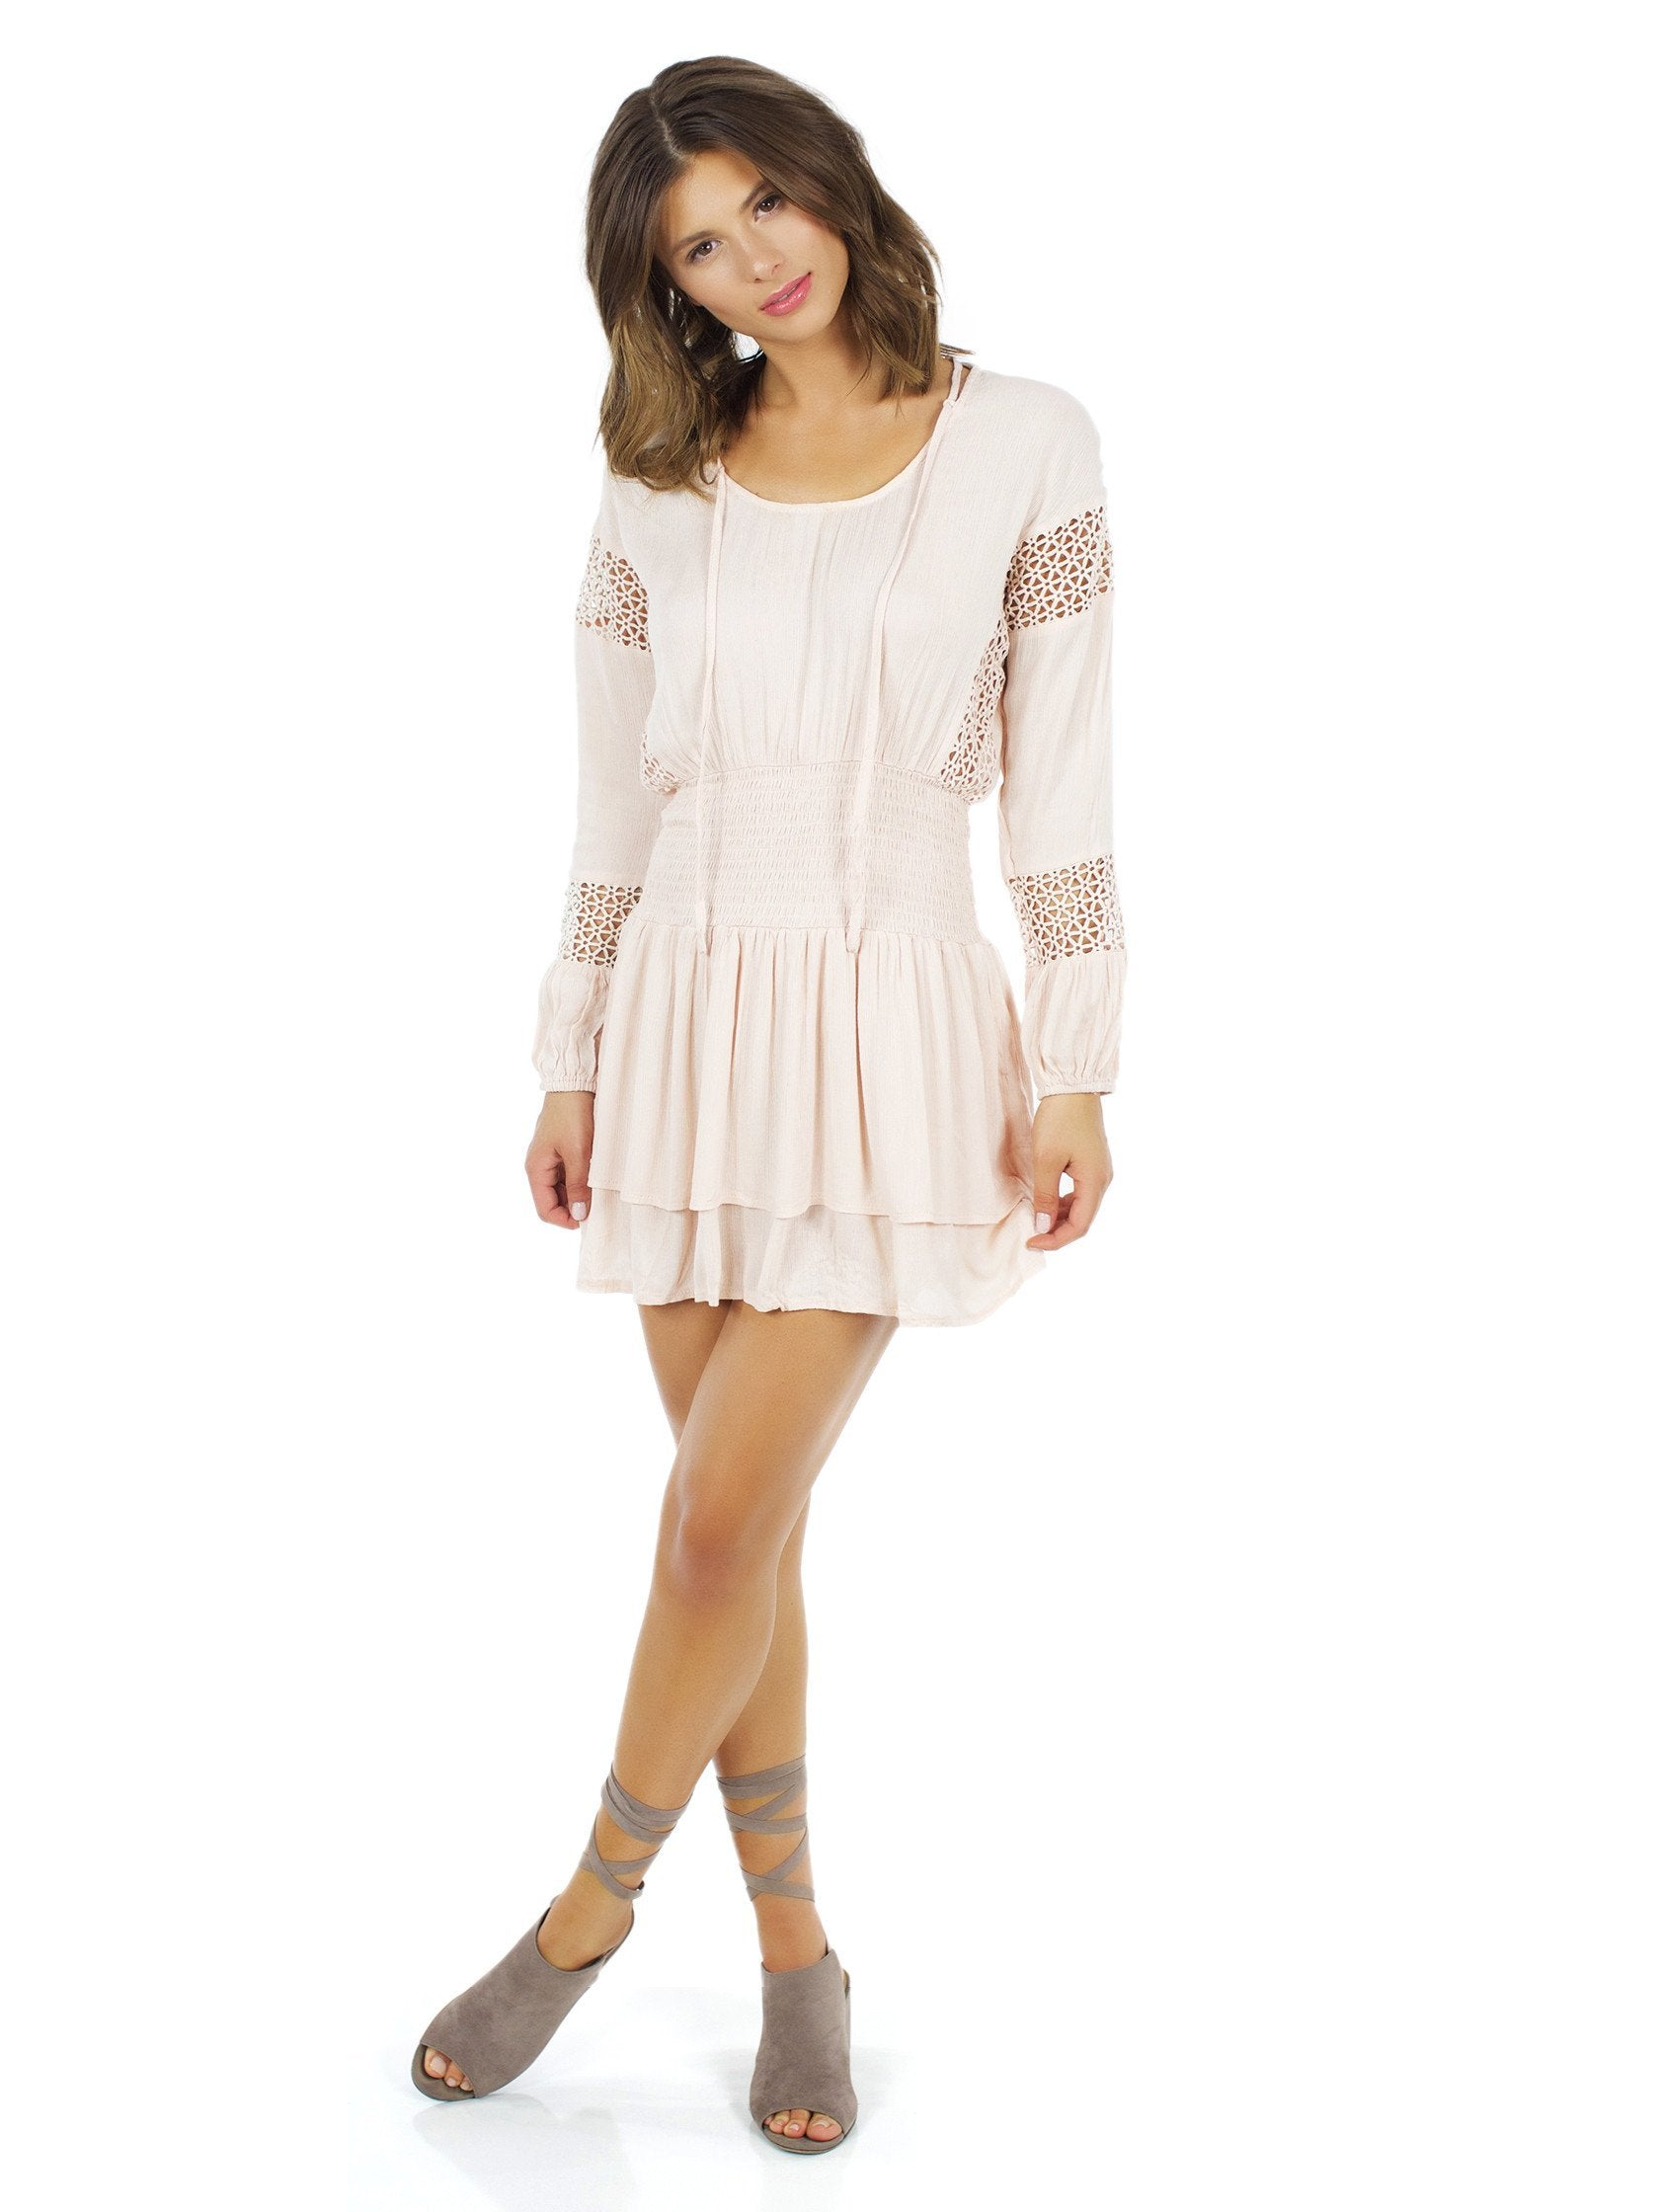 Girl outfit in a dress rental from Lost In Lunar called Escape Tunic Dress